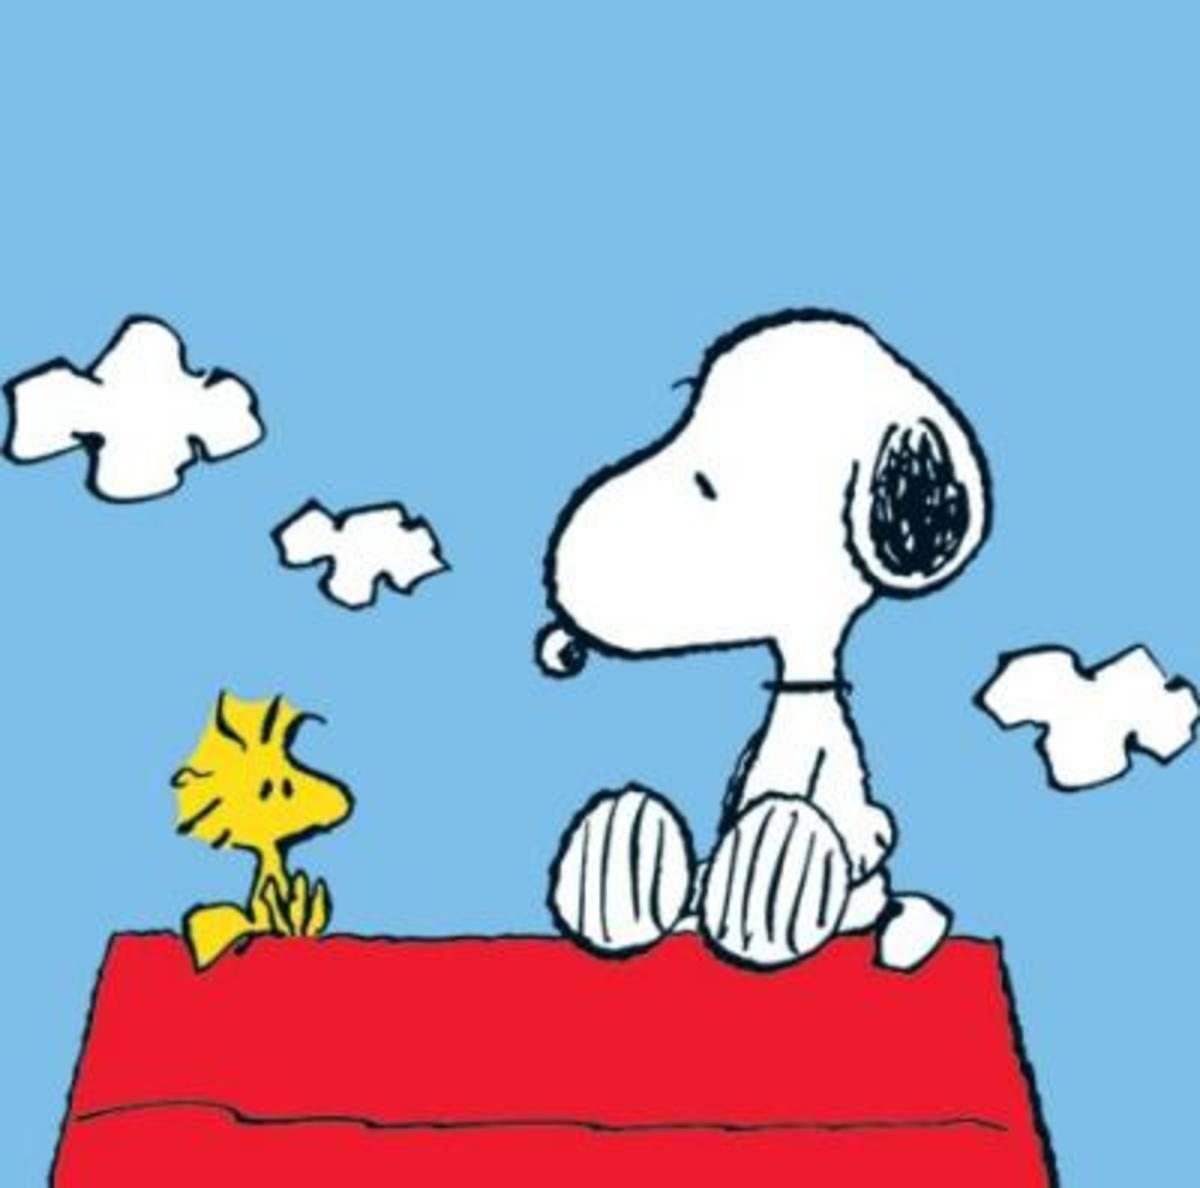 From Peanuts to Zippy: My Ten Favorite Newspaper Cartoon Strips